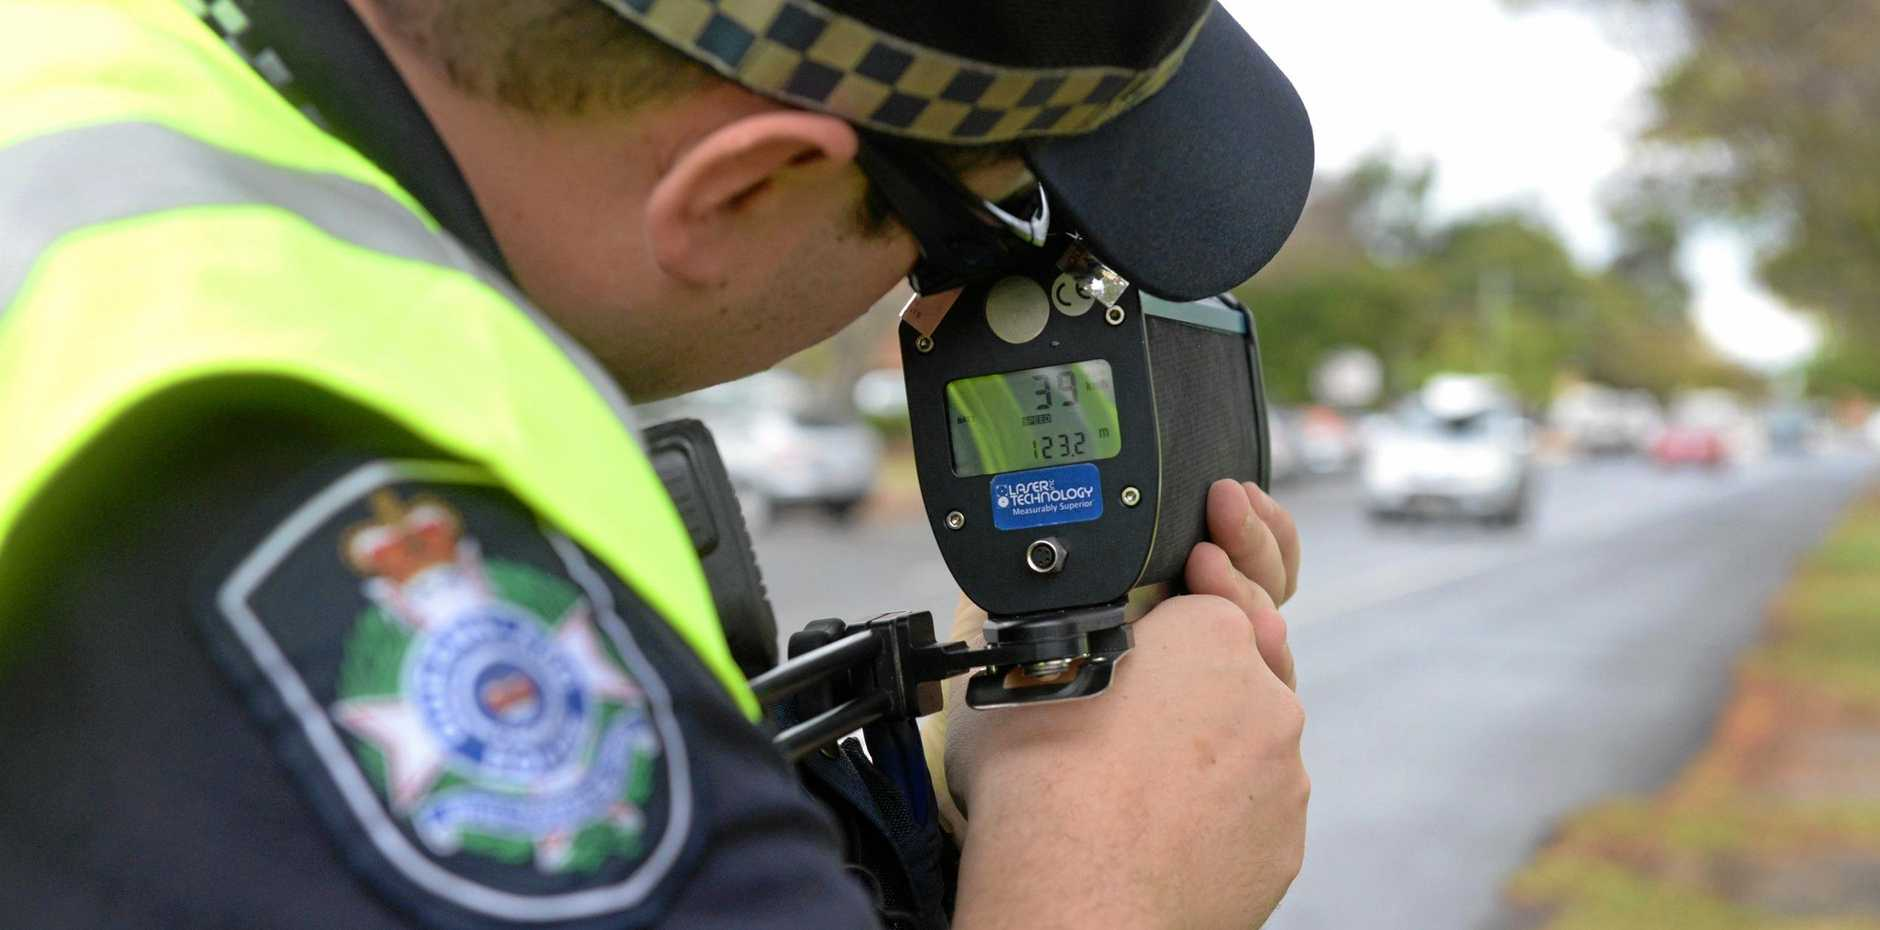 The Gympie region's most dangerous drivers have been revealed.